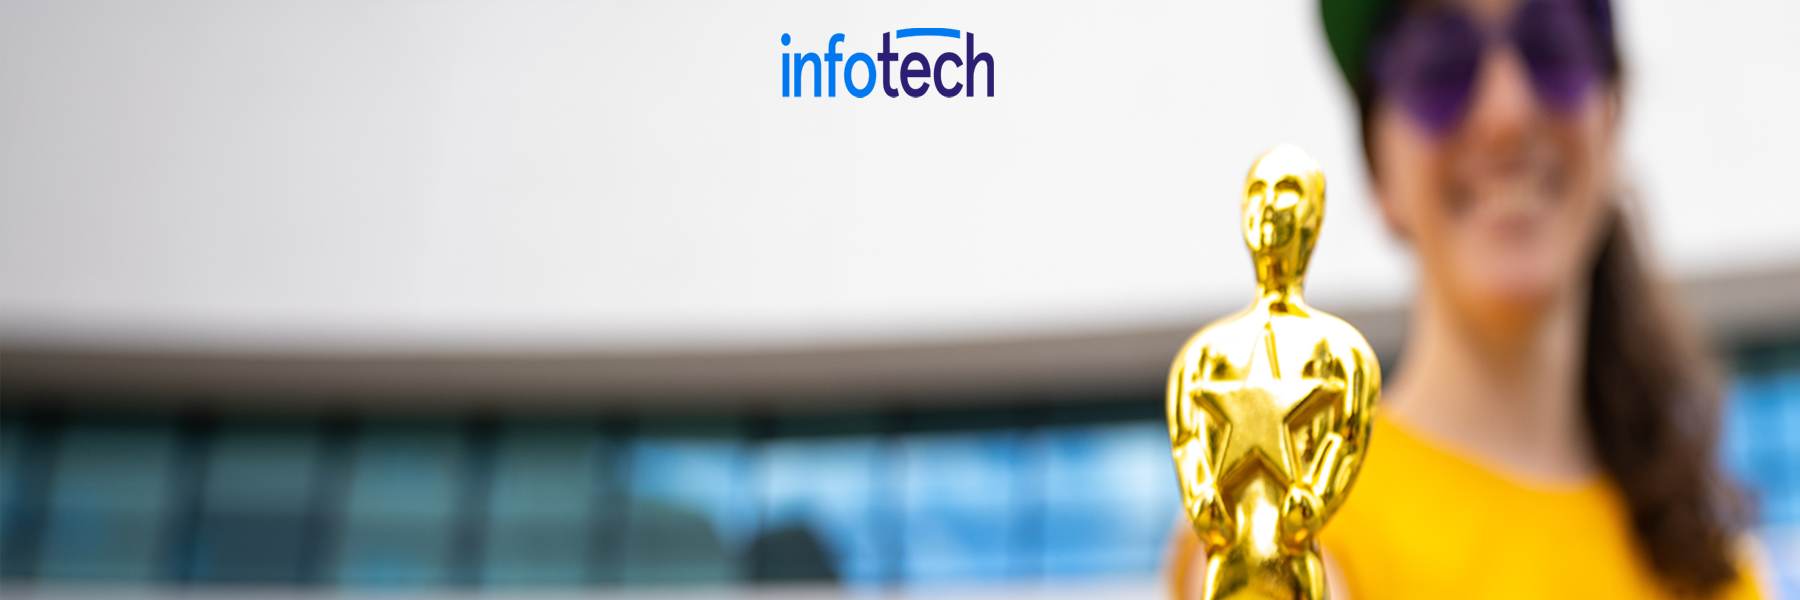 Infotech's Innovation in Action